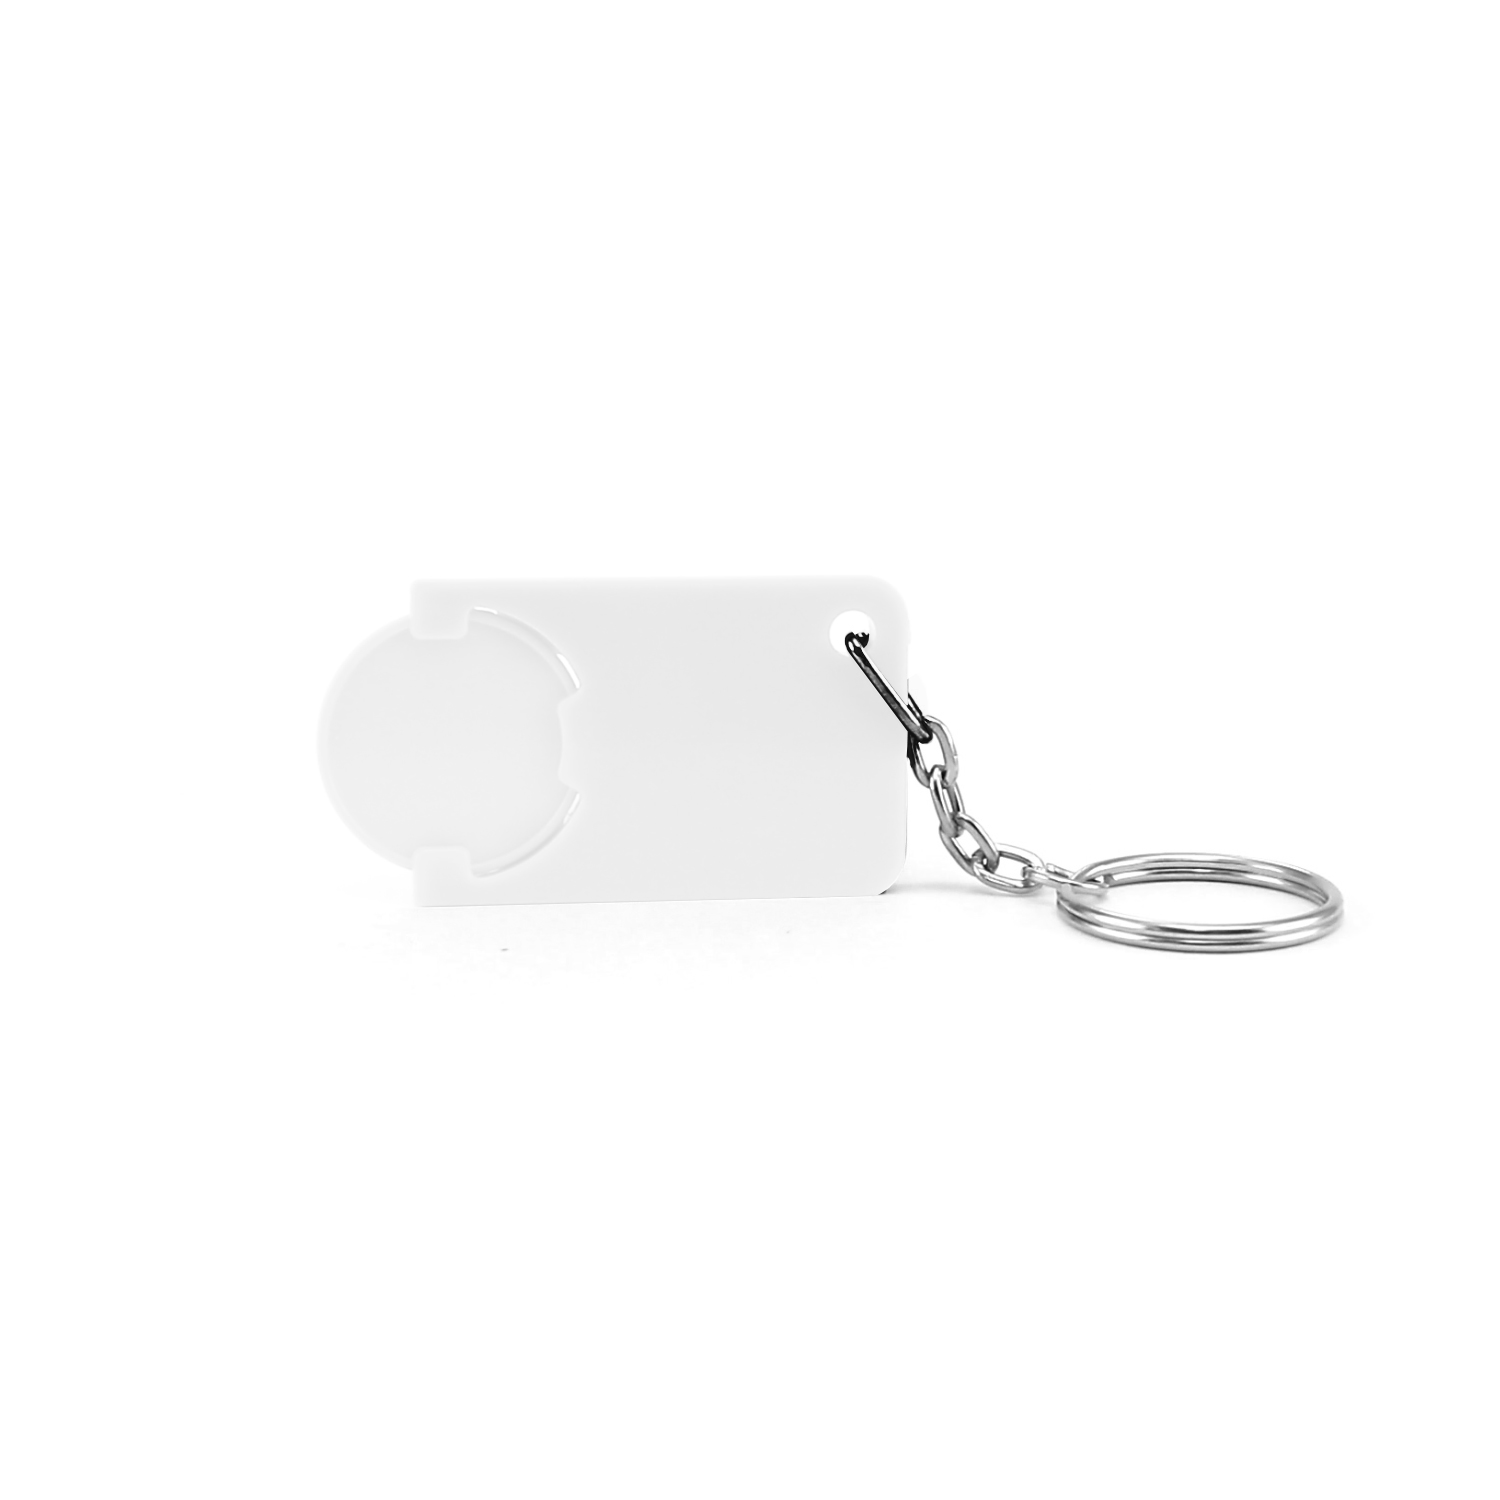 Keychain 039 (Shopping Trolley coin keychain) - hmi47039-02 (White)